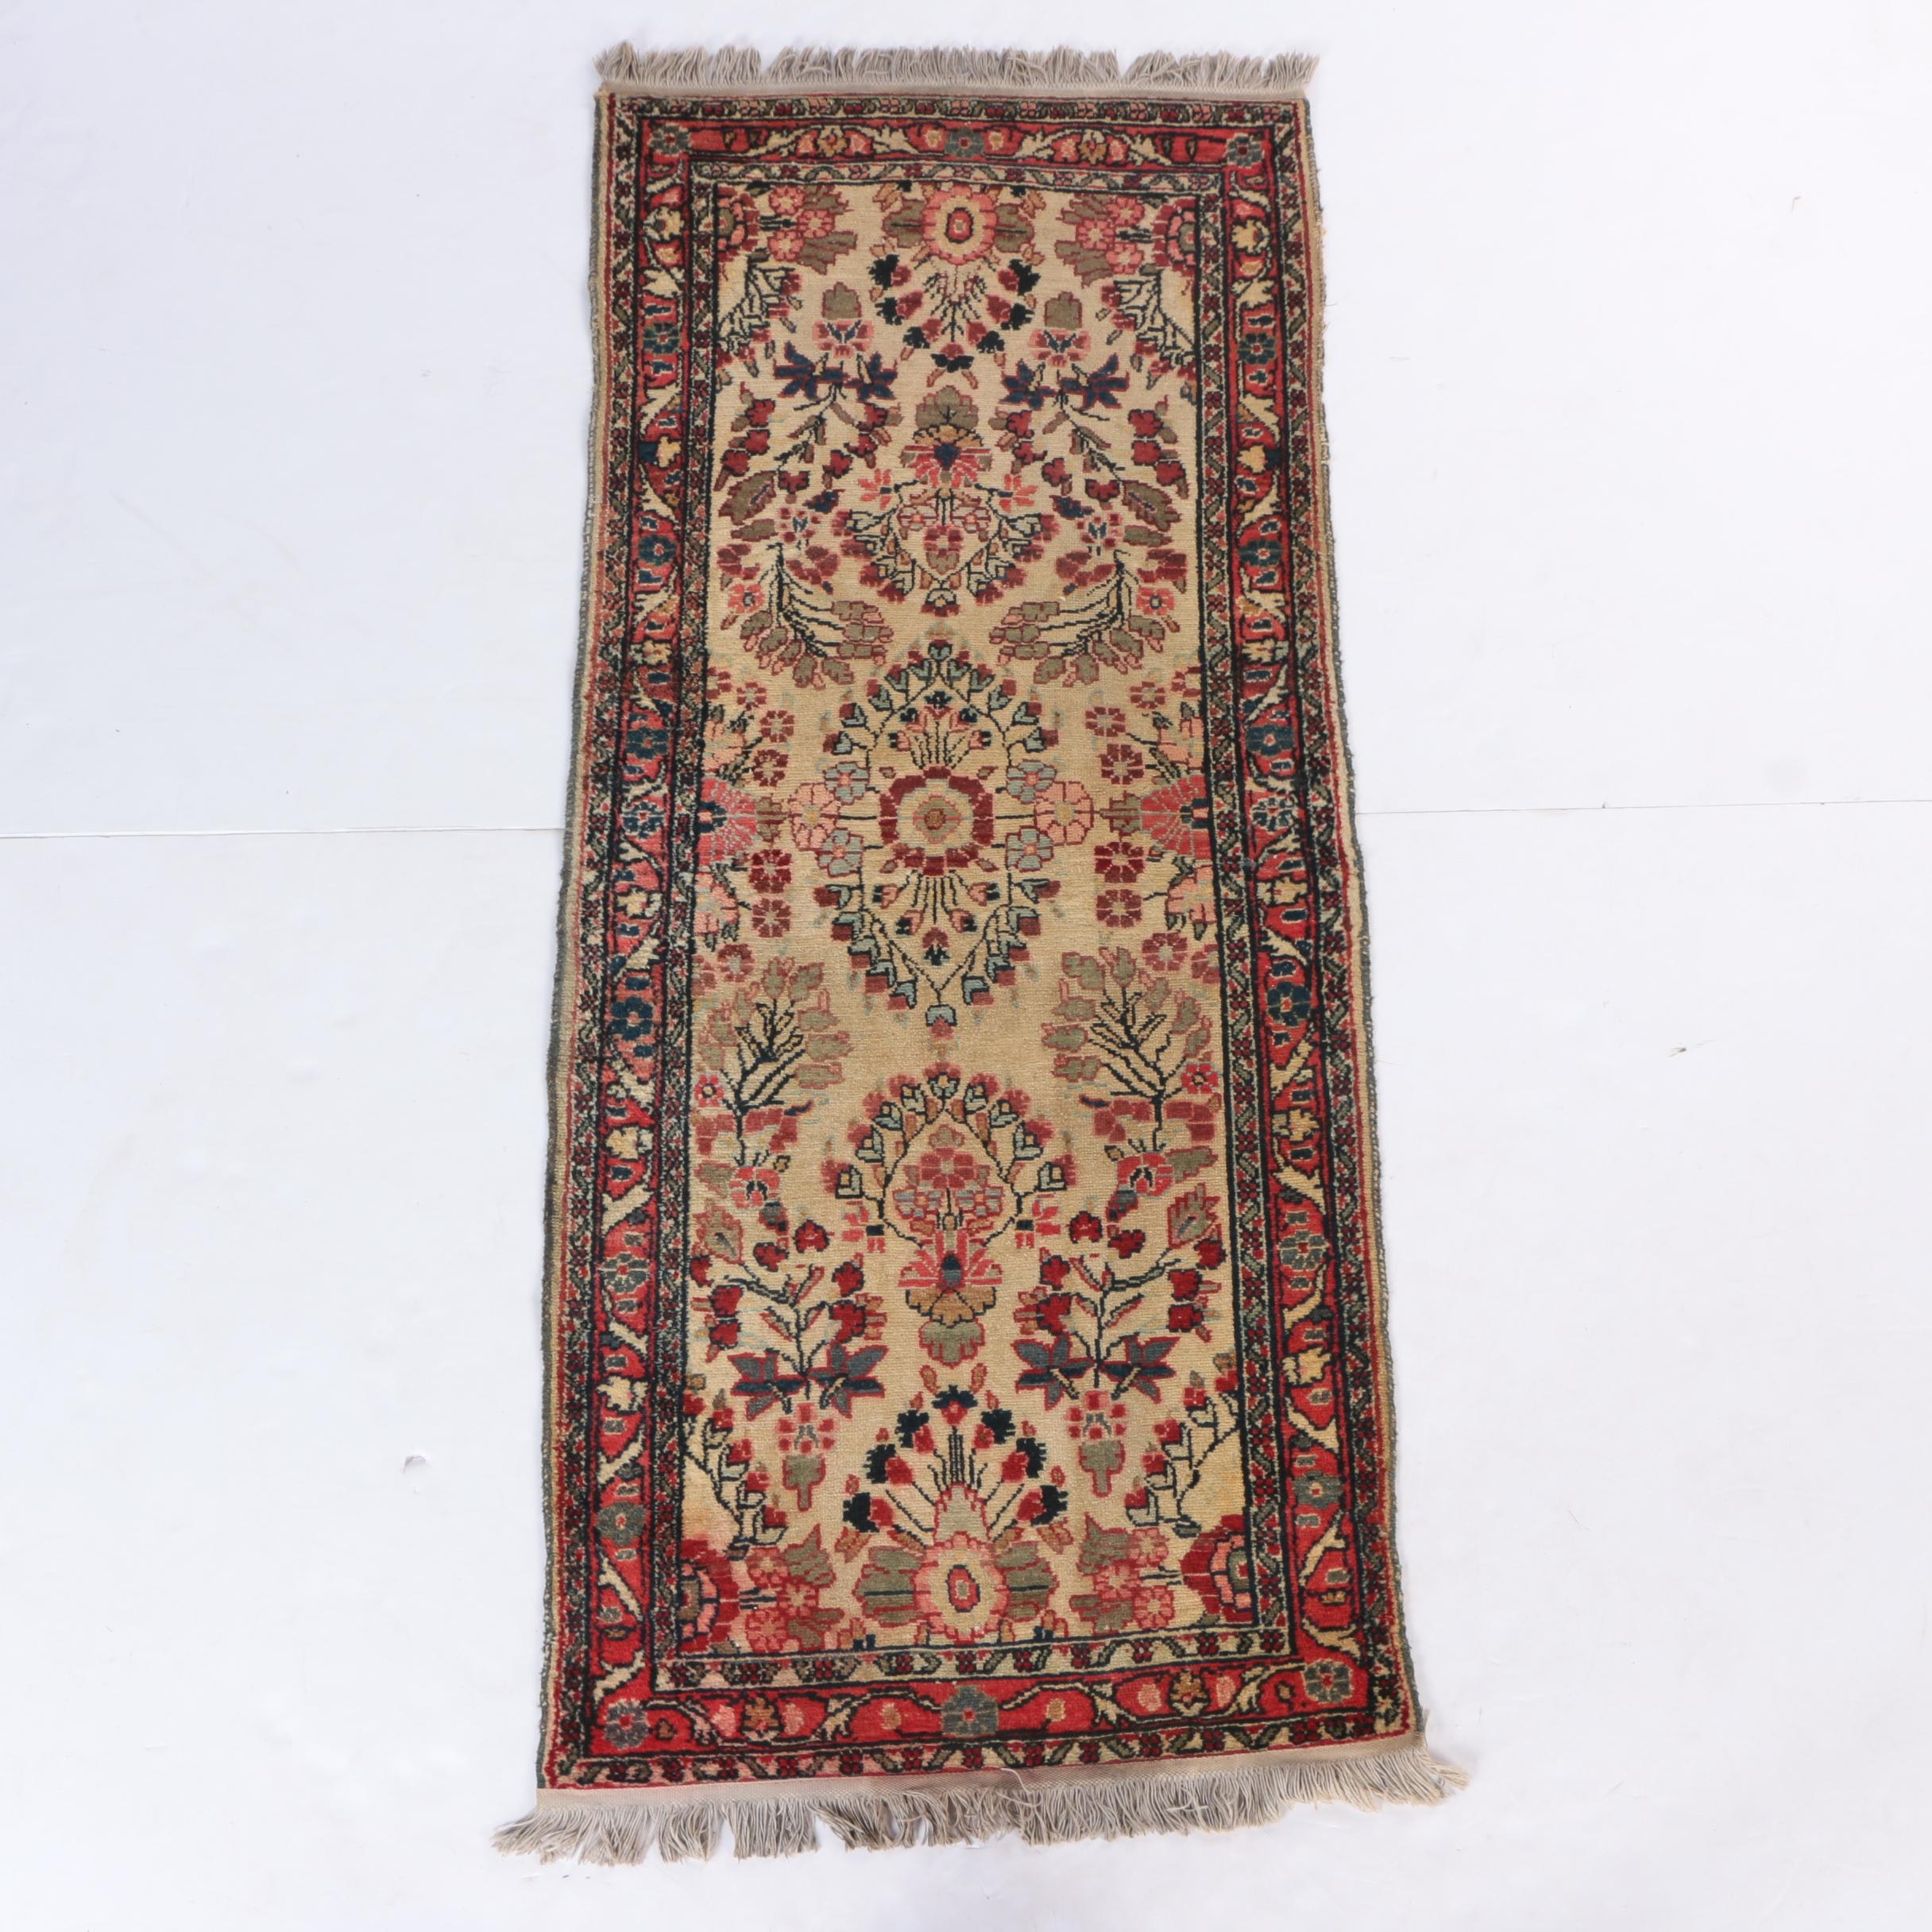 Semi-Antique Hand-Knotted Persian Sarouk Carpet Runner